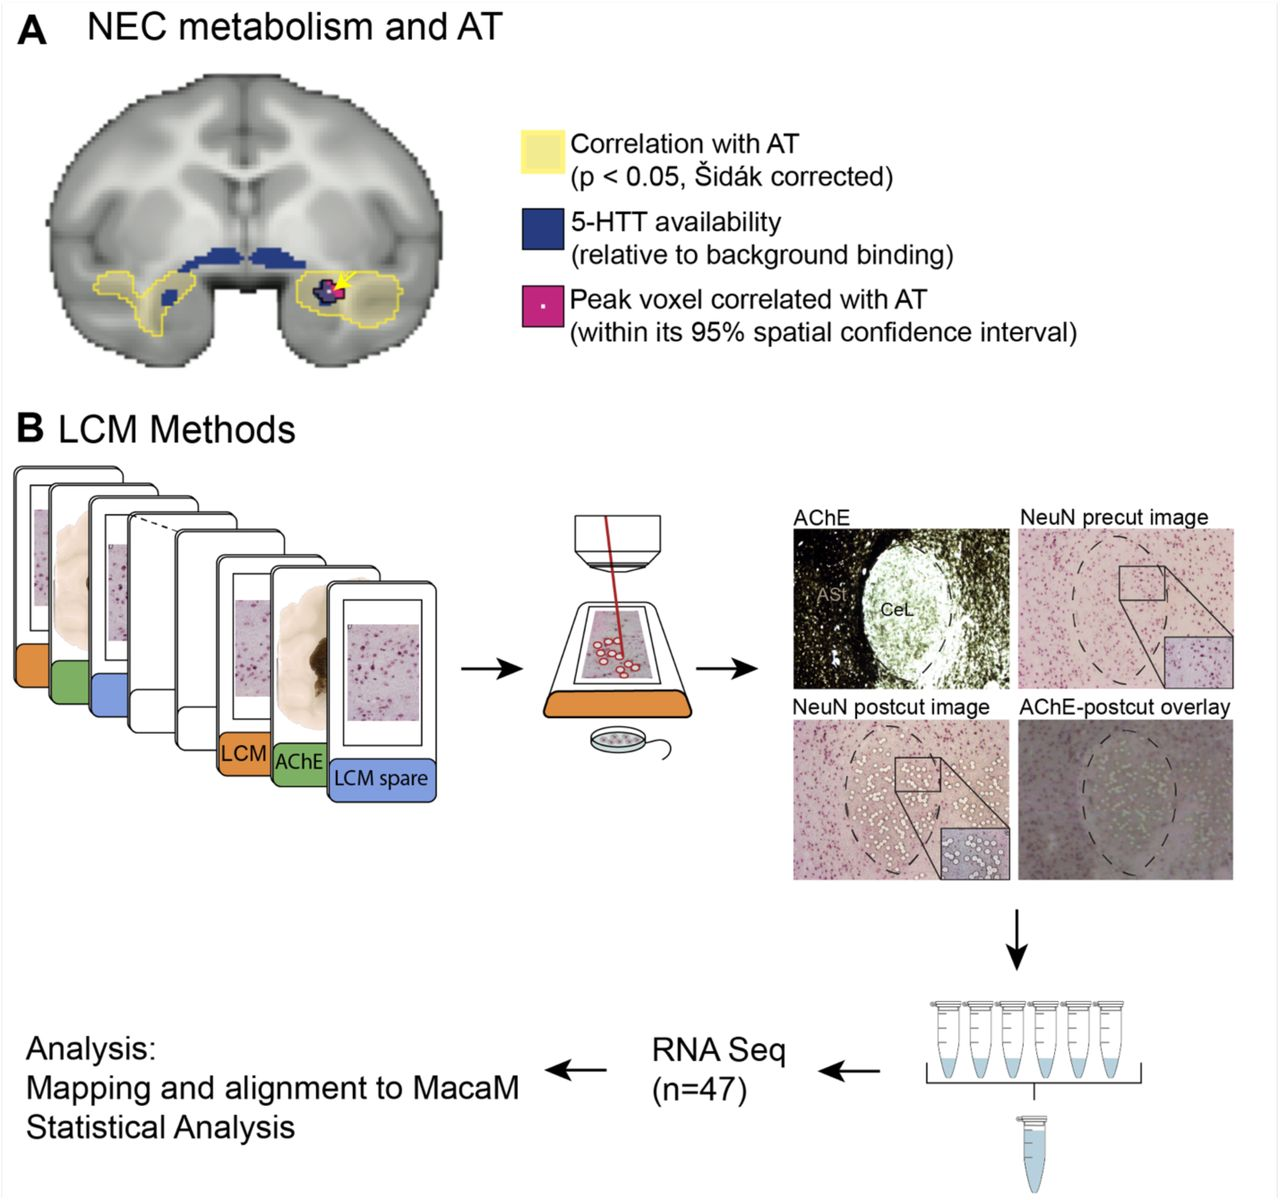 AT-associated PET metabolism in the Ce as a rationale for laser capture microdissection and sequencing of CeL neurons. (A) Using data from our large sample of AT-phenotyped and brain imaged animals, we previously demonstrated that individual differences in NEC-associated PET metabolism are related to individual differences in AT (yellow, ( Oler et al., 2010 ). We identified the peak AT voxels (pink) to be in the Ce region by demonstrating an overlap with serotonin transporter binding (blue), which, relative to surrounding regions, is elevated in the CeL. (B) Brain slabs containing the amygdala were identified and the A-P location was determined before sectioning. Tissue was sectioned and mounted on LCM slides (orange and blue labels). Adjacent slides were stained with AChE (green labels) to determine the location of the CeL. LCM slides were stained with an abbreviated NeuN protocol and CeL neurons were captured into the lid of a <t>microfuge</t> tube. Post-cut overlays were made for every slide to confirm capture location. RNA from 500-600 CeL neurons was pooled and used for RNA-Seq (n=47). Reads were processed and aligned to MacaM ( Zimin et al., 2014 ).